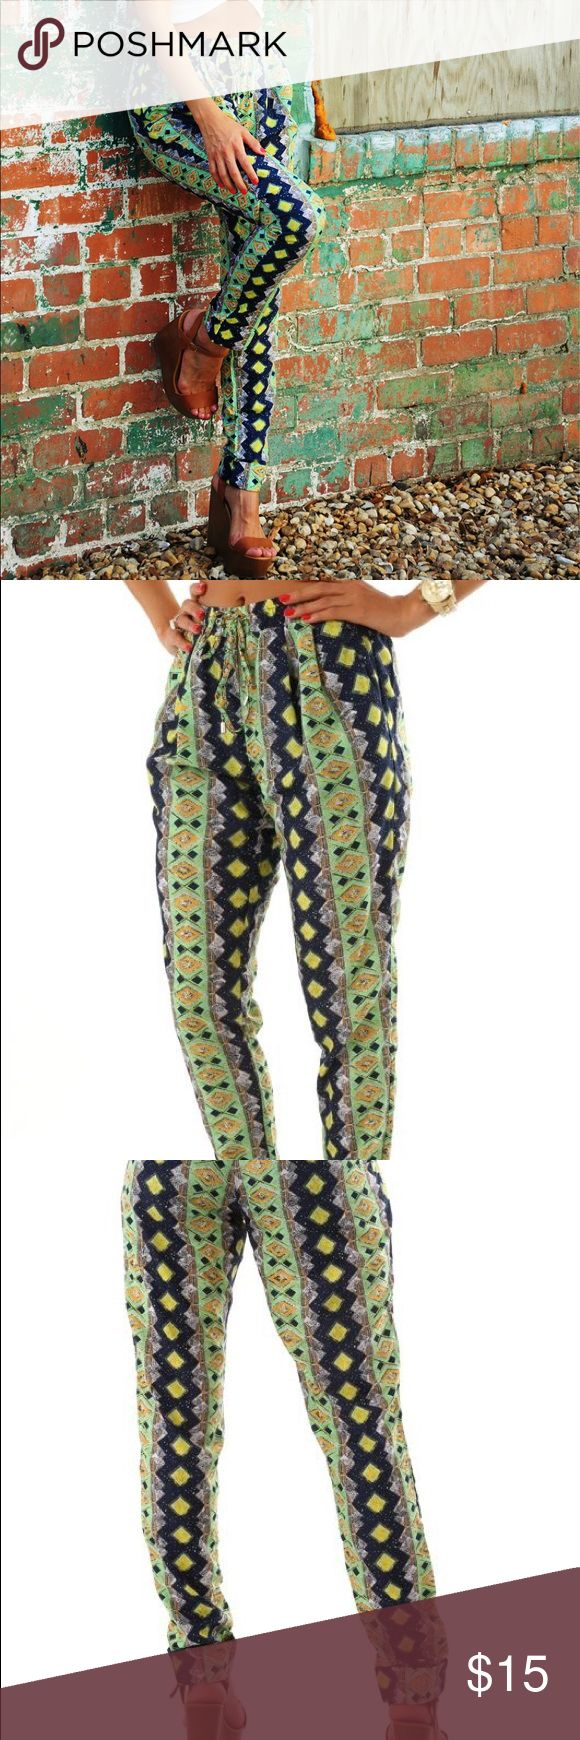 Multi Color Aztec Print Joggers Never Worn. Aztec Print higher style pants. Fully lined. High waisted. Elastic waist with tie. Tapered pant. Very J Pants Trousers